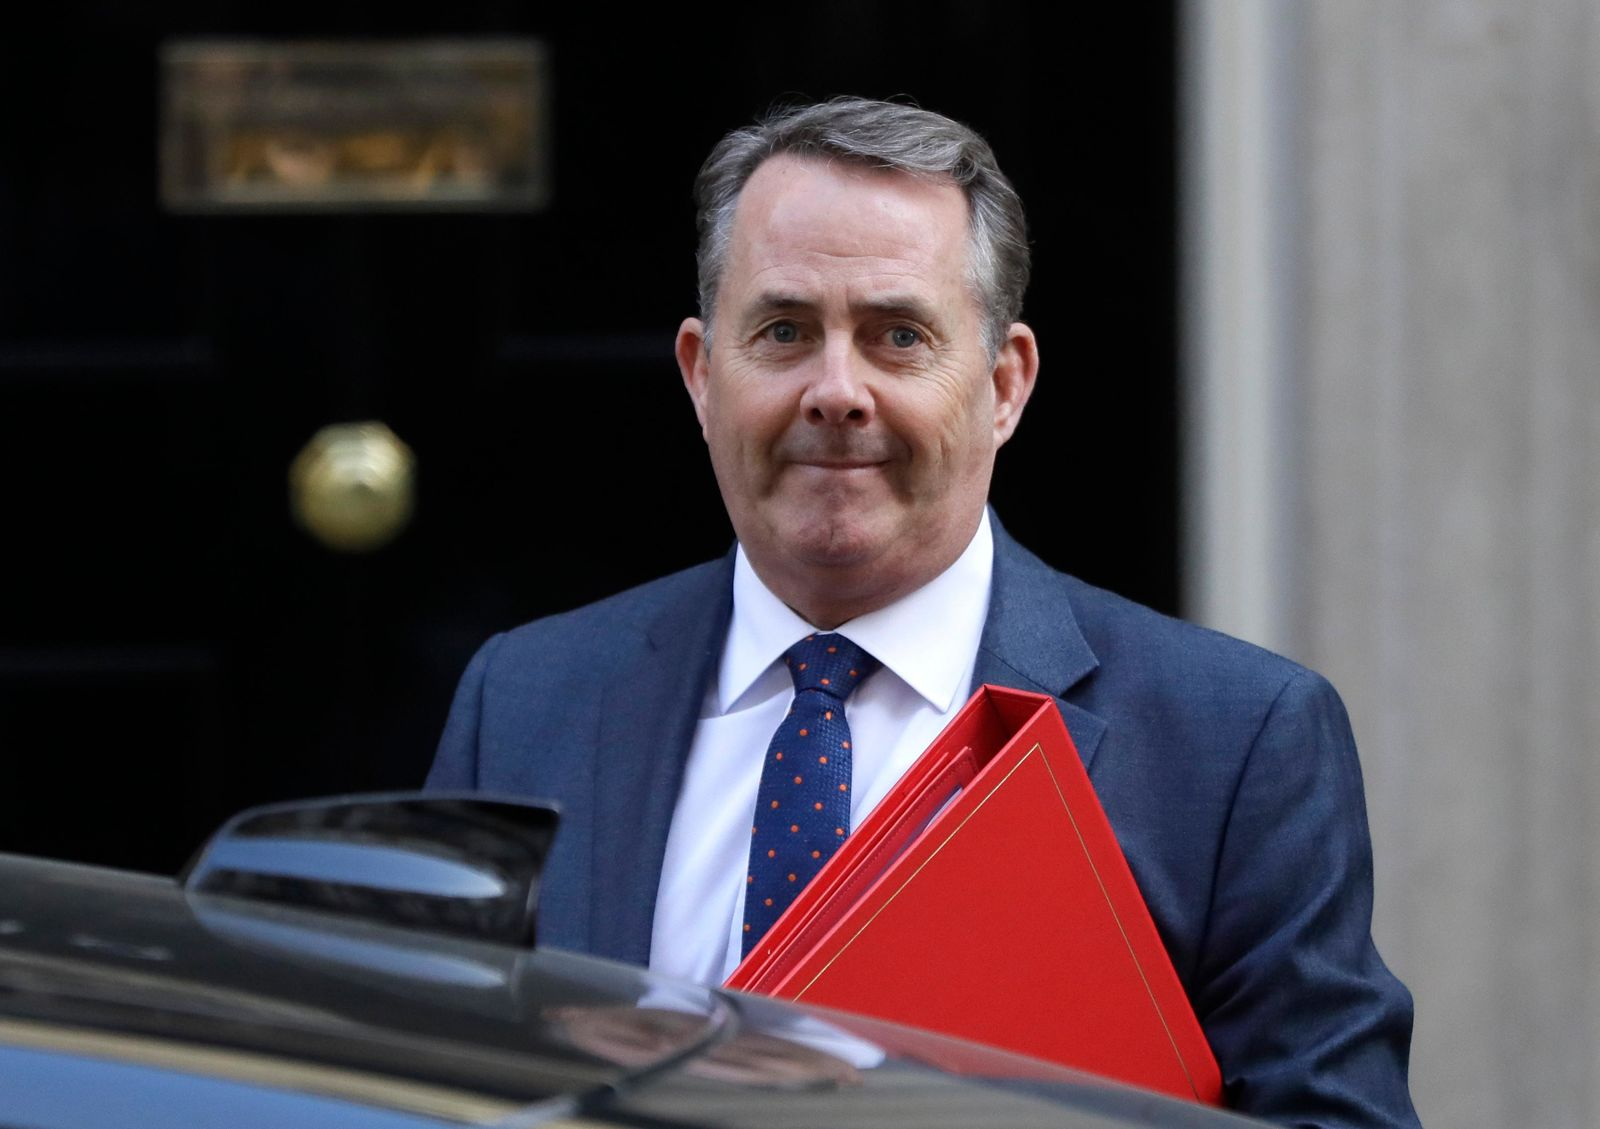 Liam Fox Britain's Secretary of State for International Trade arrives for a Cabinet meeting at Downing Street in London, Monday, March 25, 2019.{ } (AP Photo/Kirsty Wigglesworth)